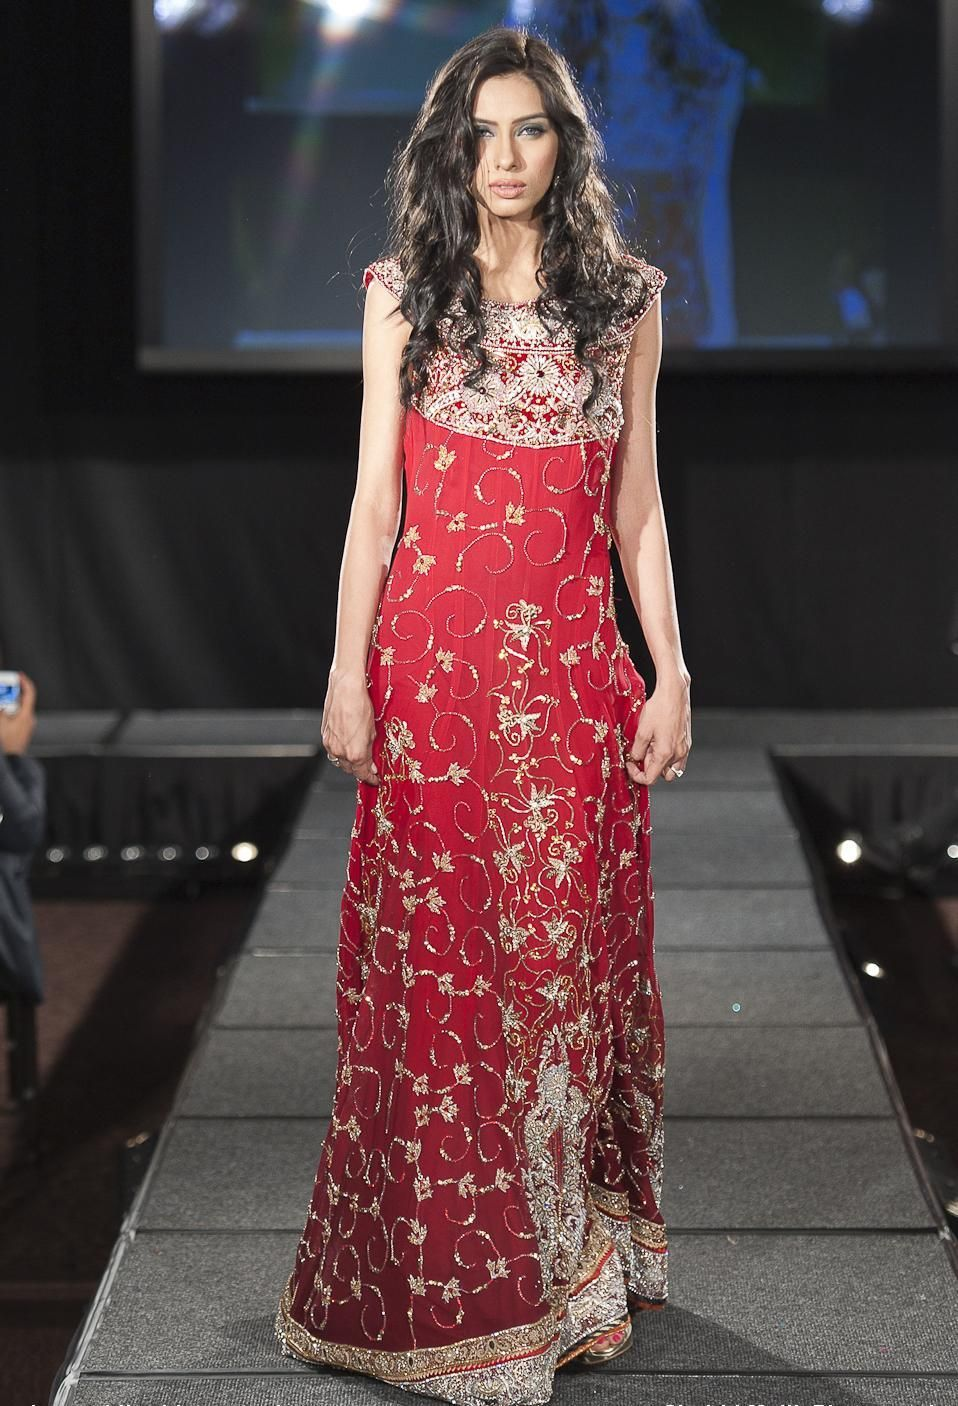 Red Amp Golden All Over Embroidered Full Length Bridal Party